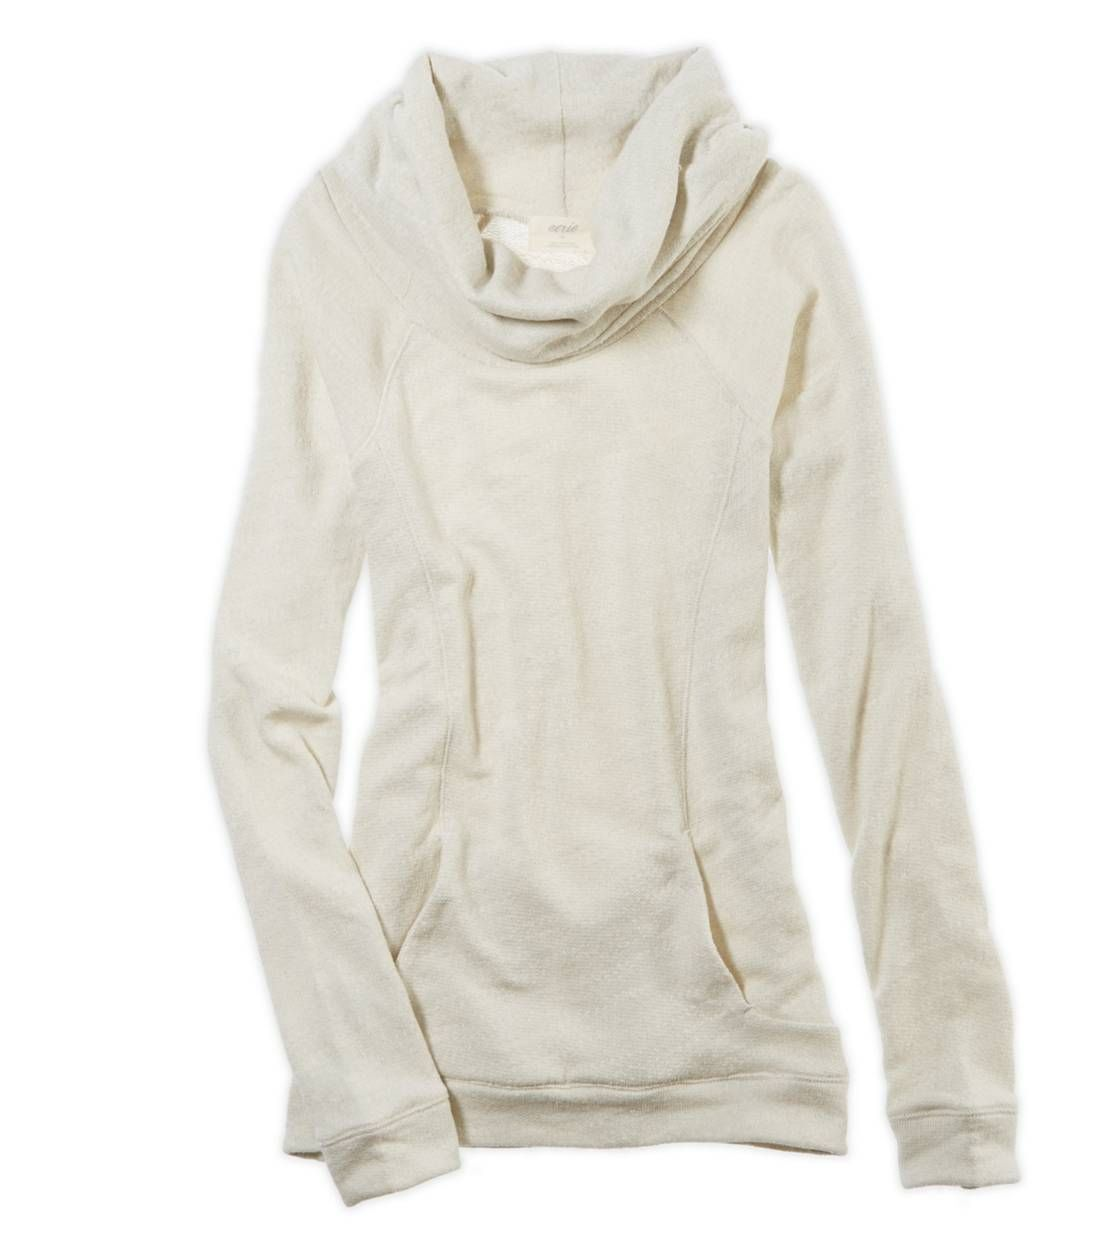 Love This So Soft Perfect For Cruisin And Regular Life Clothes Cowl Neck Sweatshirt Sweatshirts [ 1253 x 1119 Pixel ]